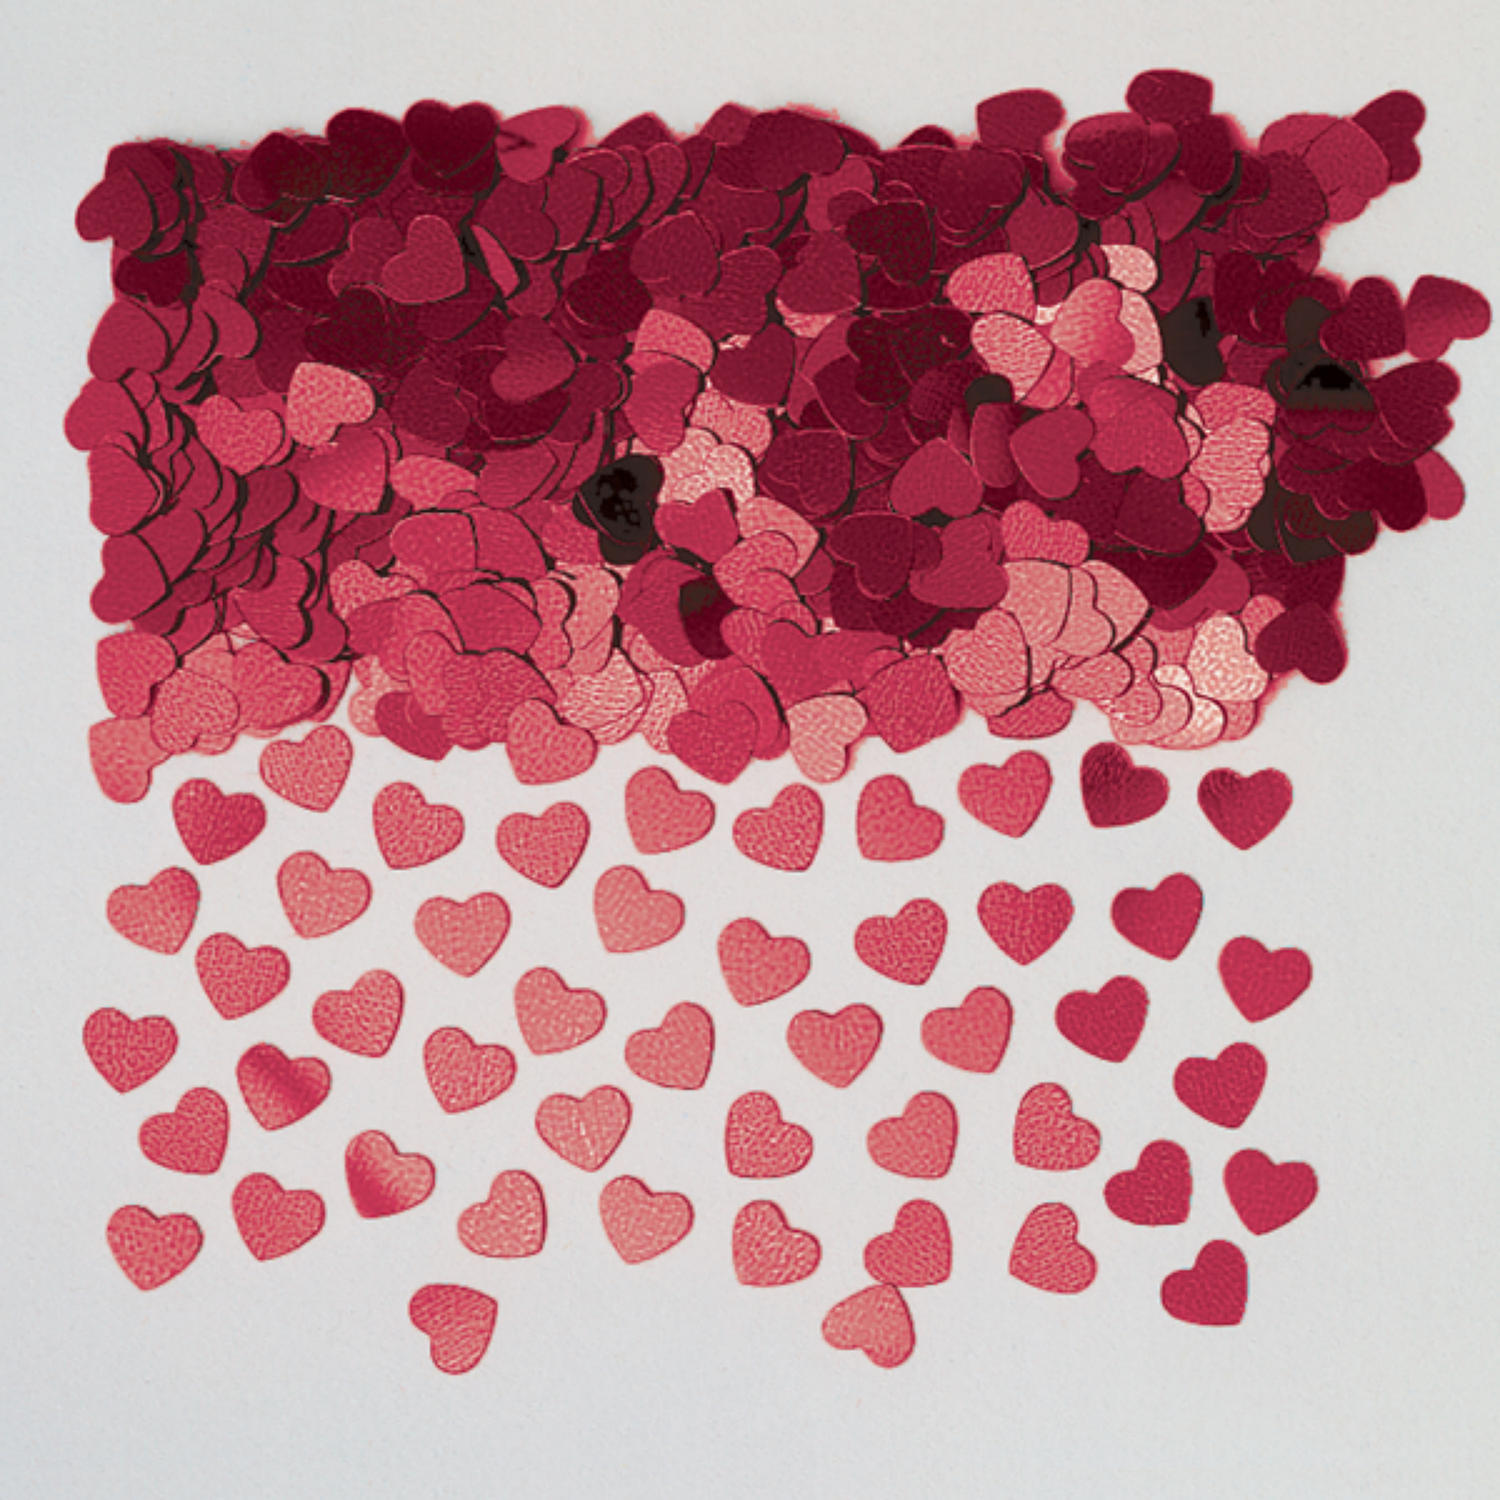 Magenta table confetti hearts